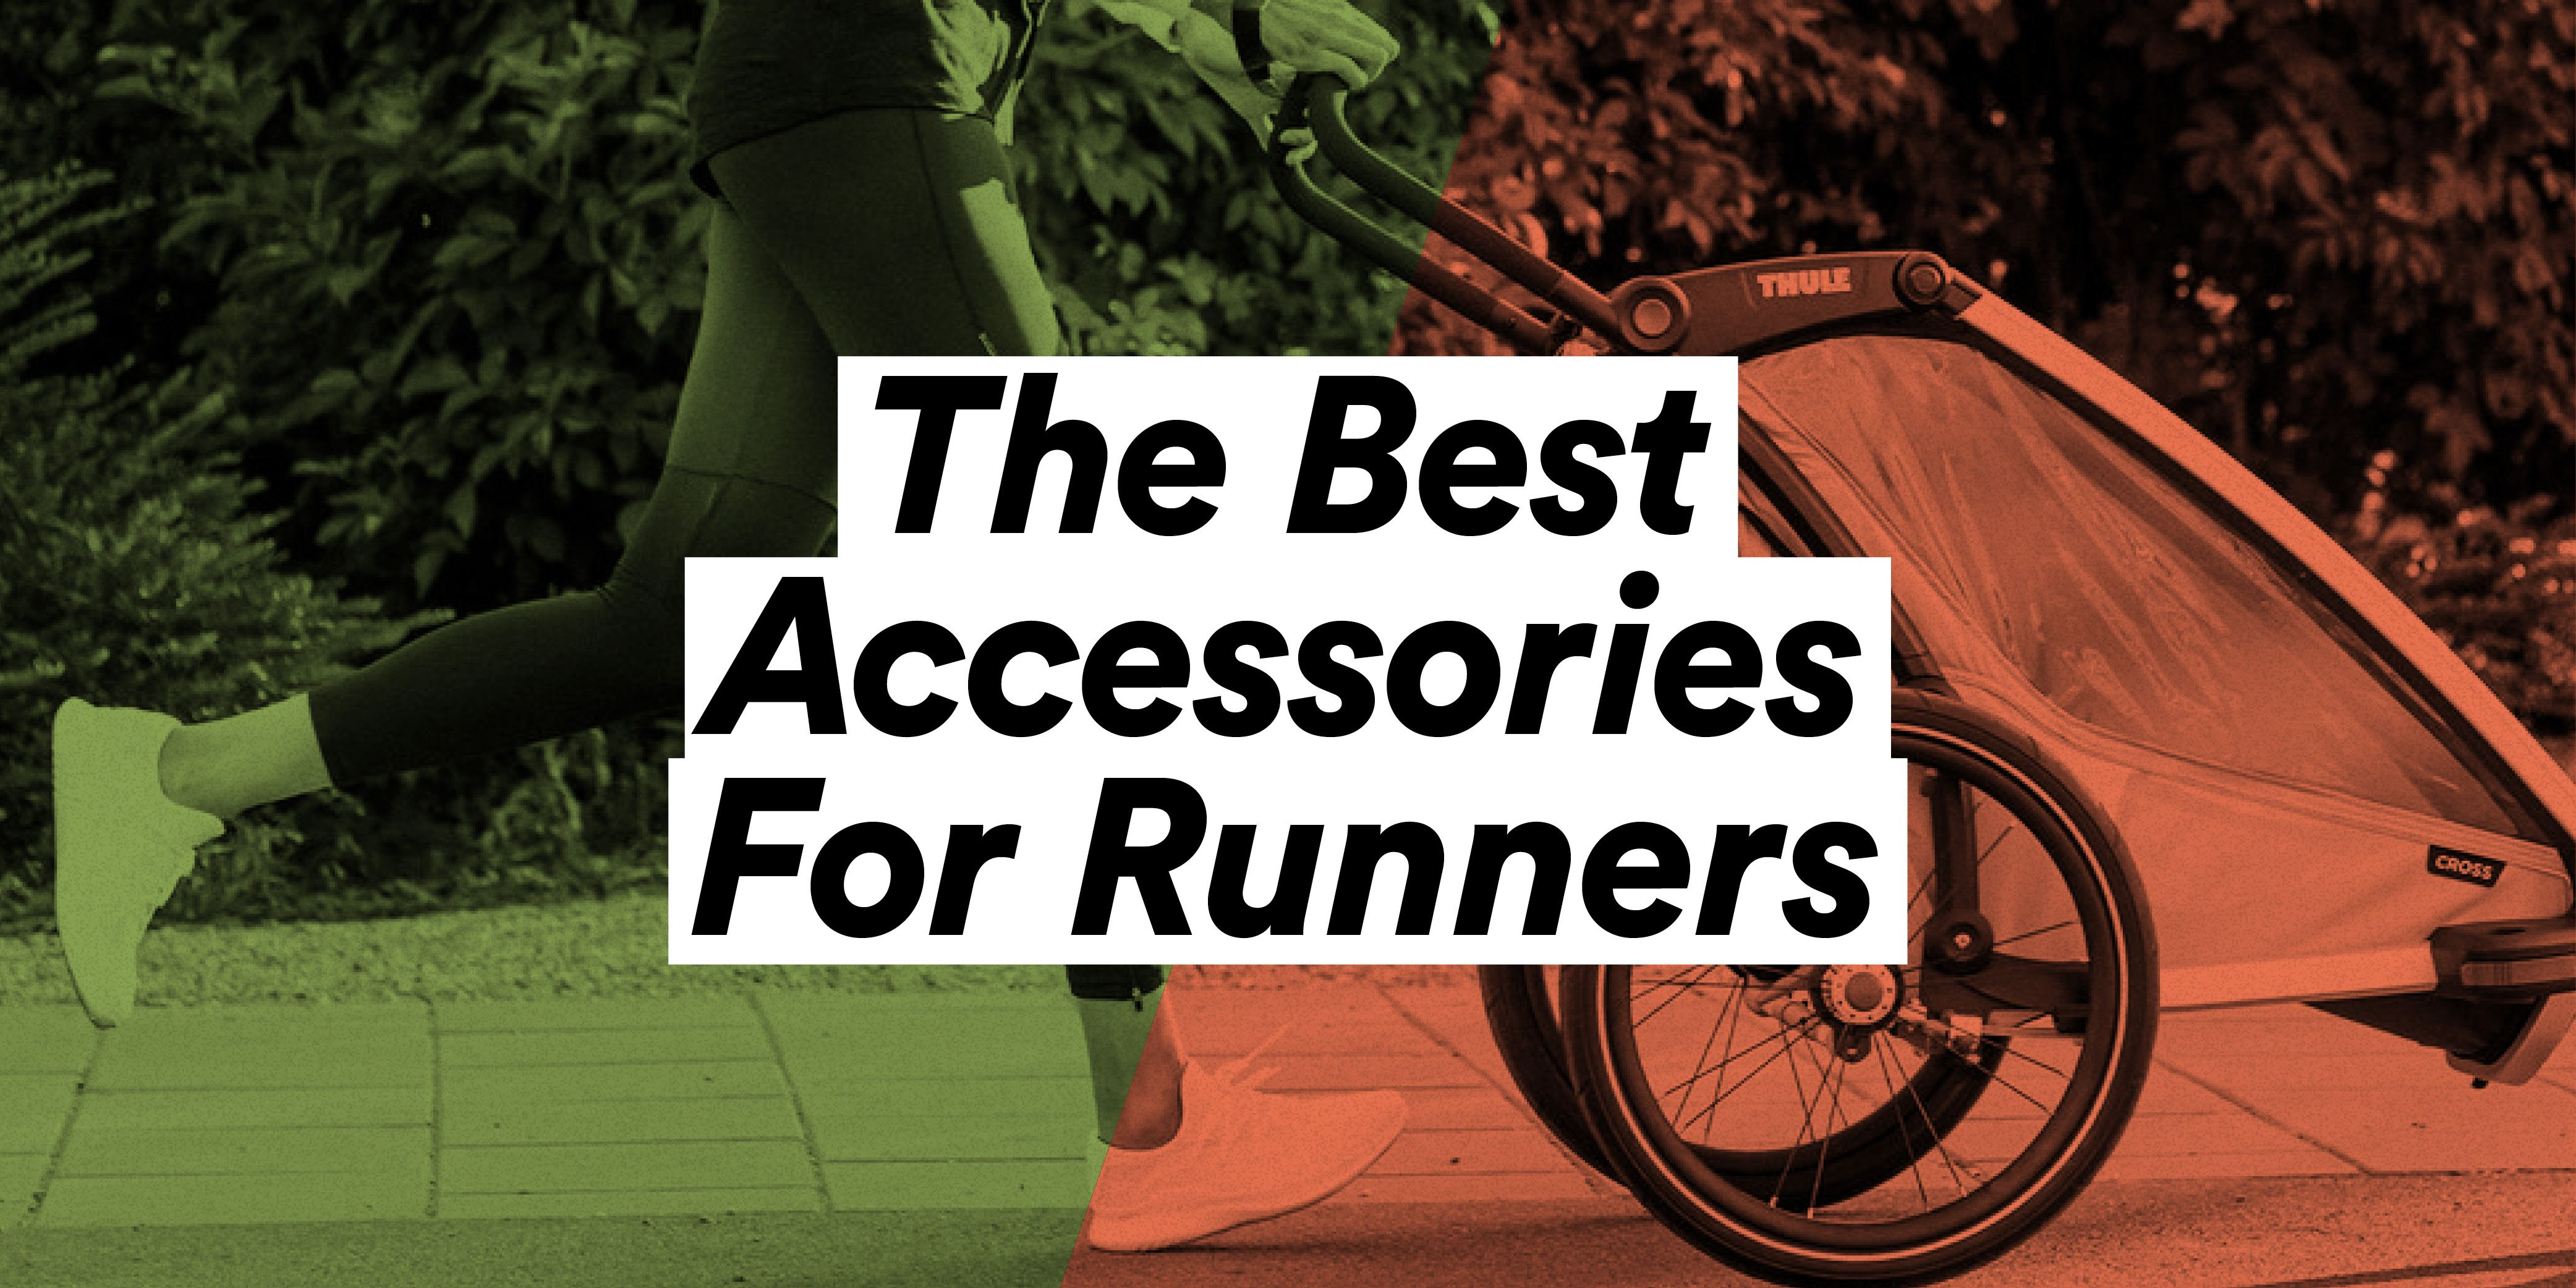 The Best Accessories for Runners